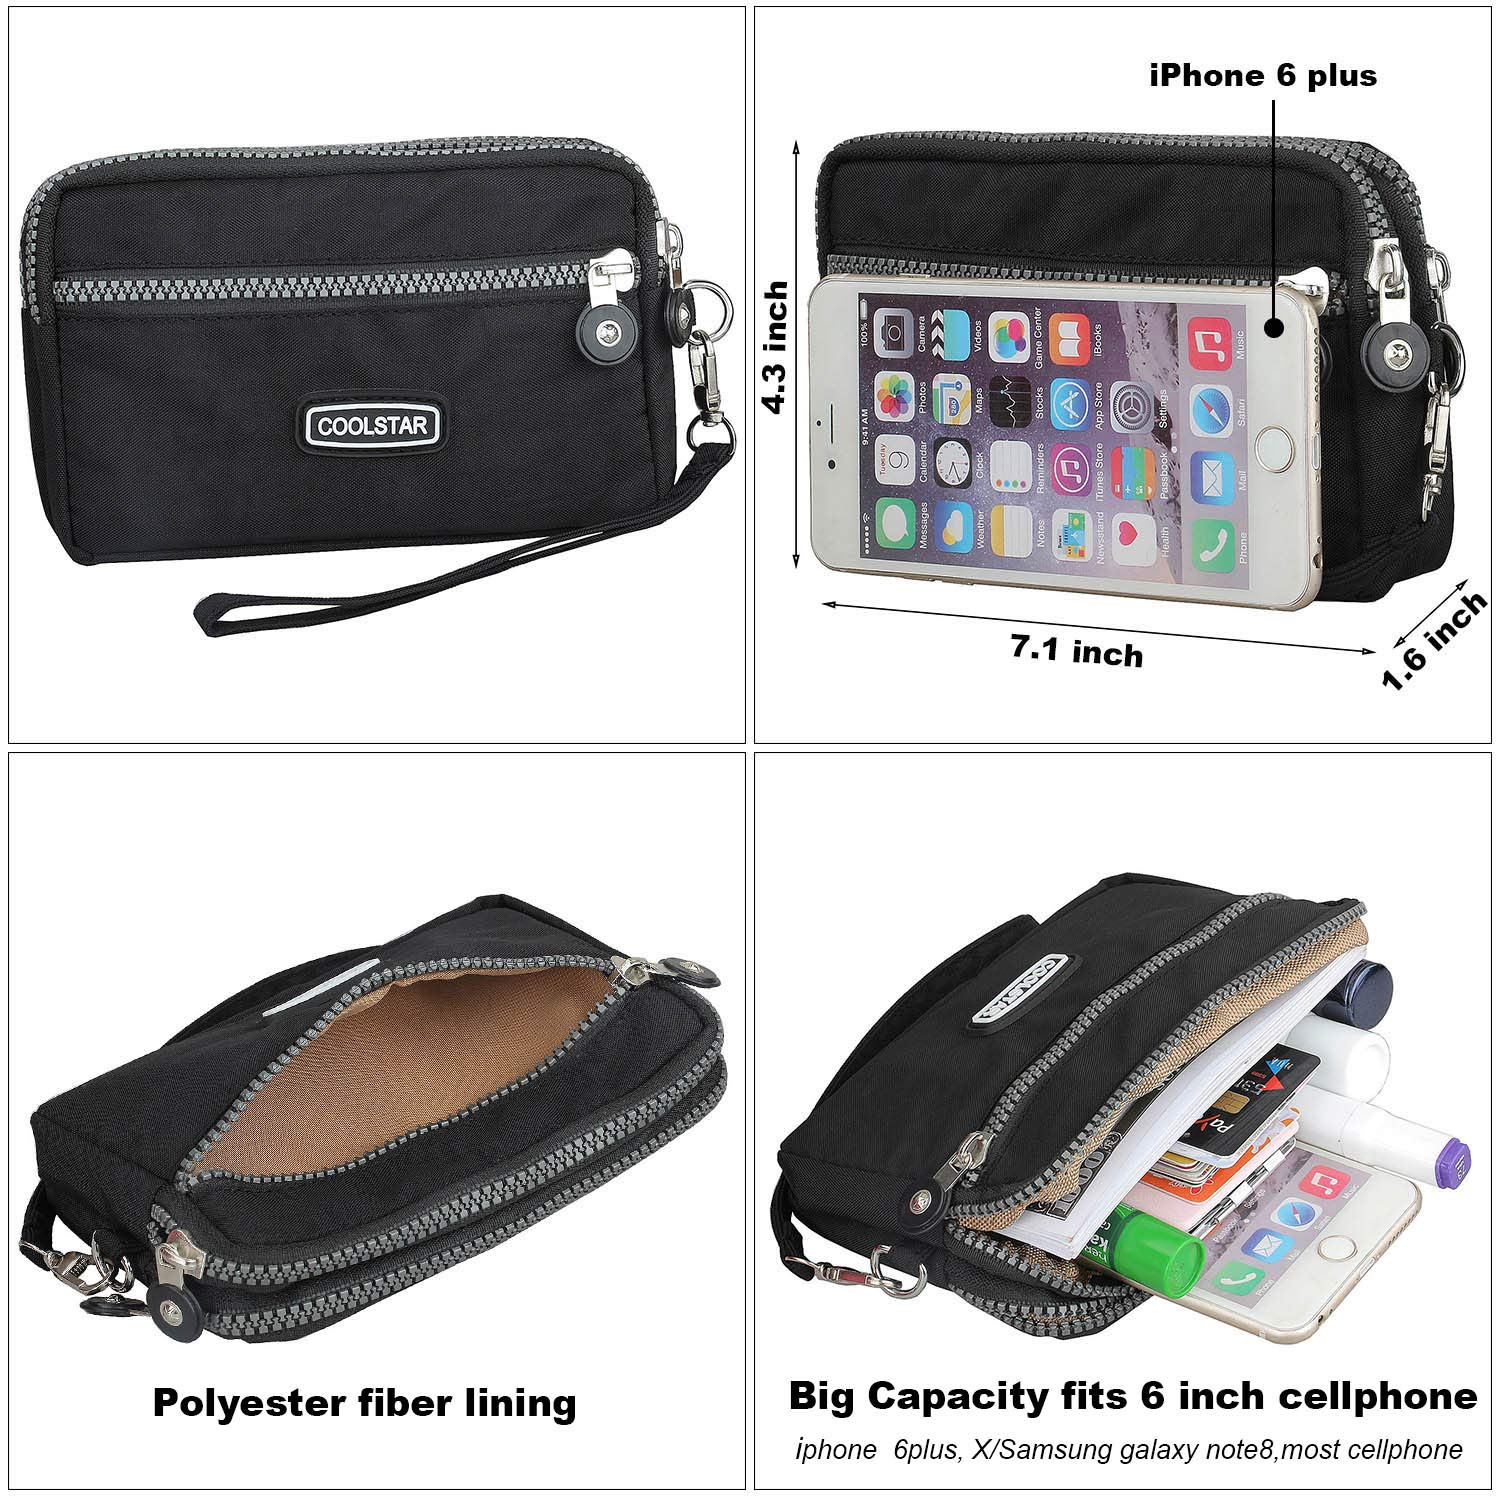 3 Zippers Clutch Wallet Waterproof Nylon Cell phone Purse Wristlet Bag Money Pouch for Women (Black) by Coolstar (Image #6)